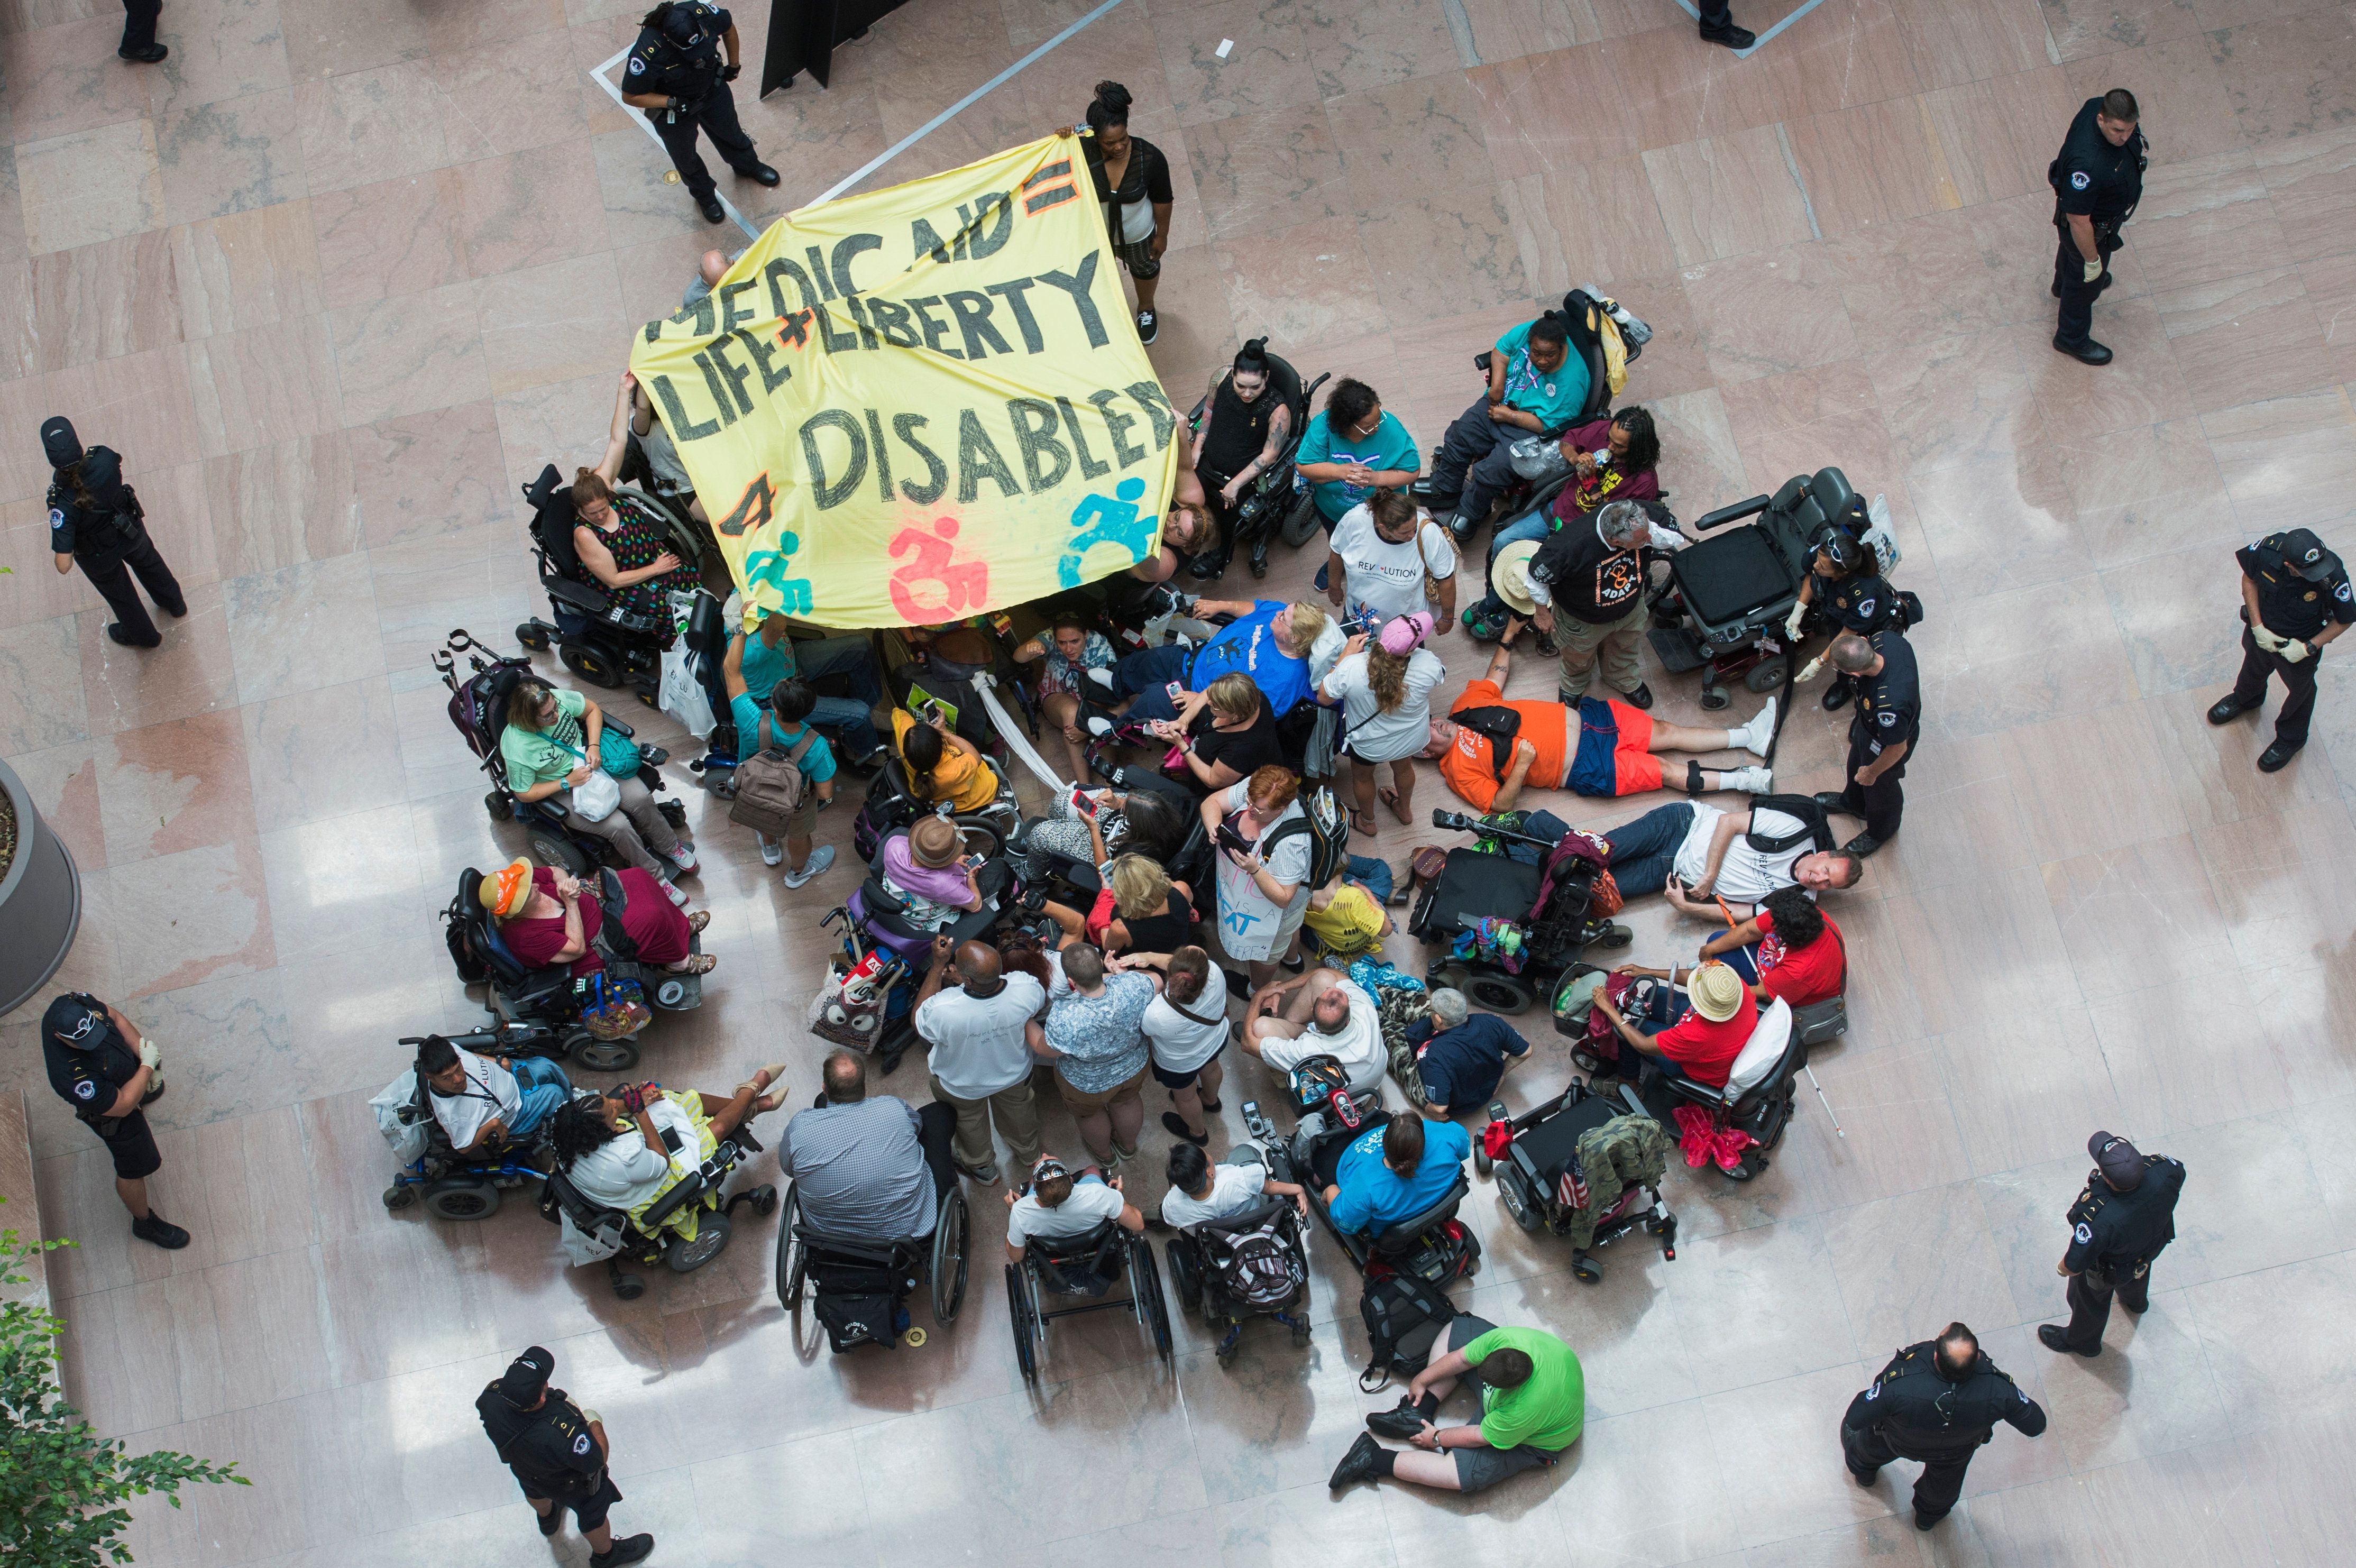 UNITED STATES - JULY 25: Demonstrators gather in the atrium of Hart Building to protest the Senate's health care bill on July 25, 2017. (Photo By Tom Williams/CQ Roll Call)